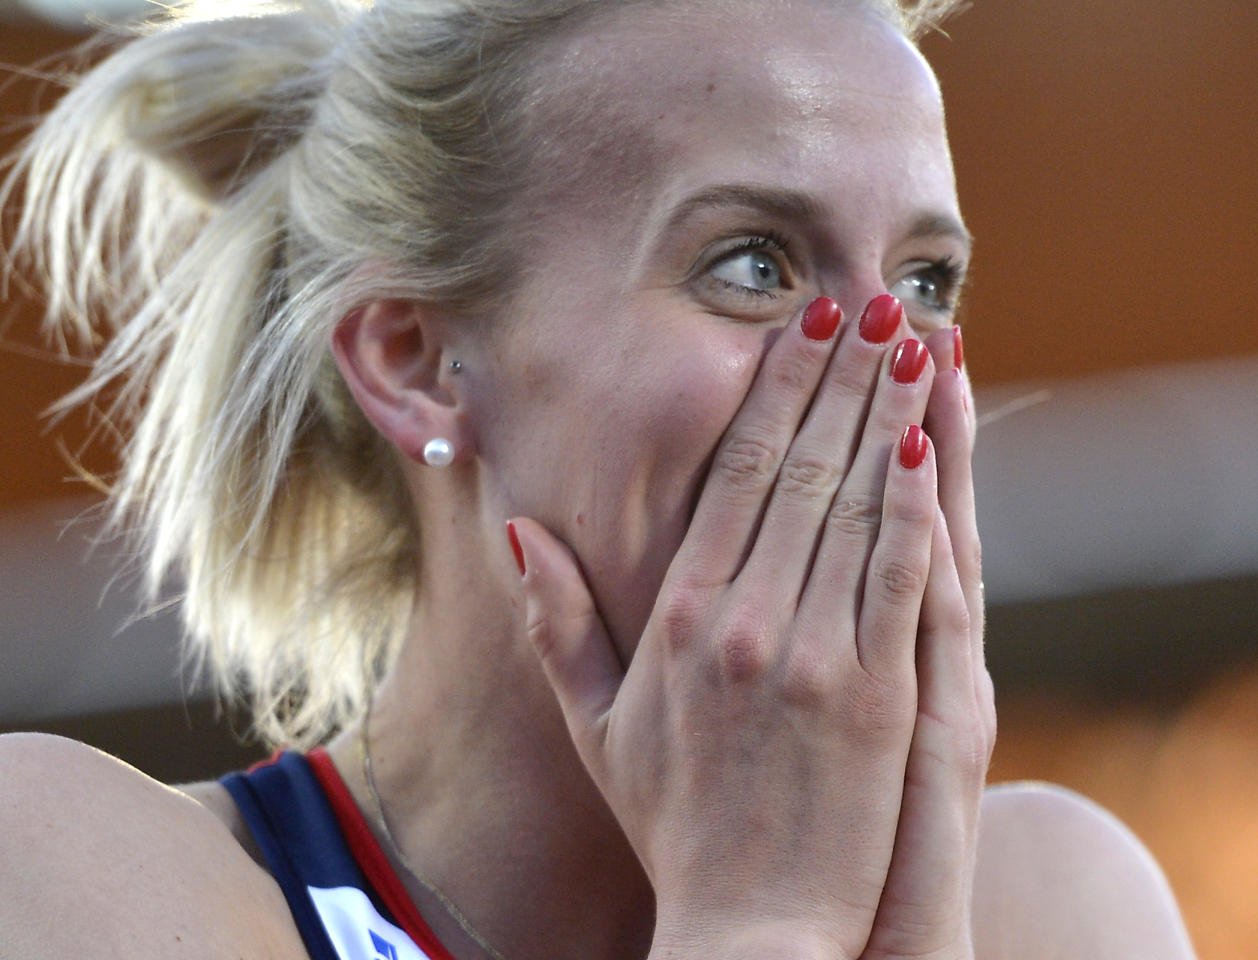 Britain's 800-meter Olympic selection situation was a mess. Trials winner and European silver medalist Lynsey Sharp (pictured) was selected for the London Games despite not having run the 'A' standard time -- which four other British women have done. Furthermore, because Sharp has only run the 'B' standard, no other runner with that time standard can be selected because no 'A' standard runners made the team. (AP Photo/Martin Meissner)